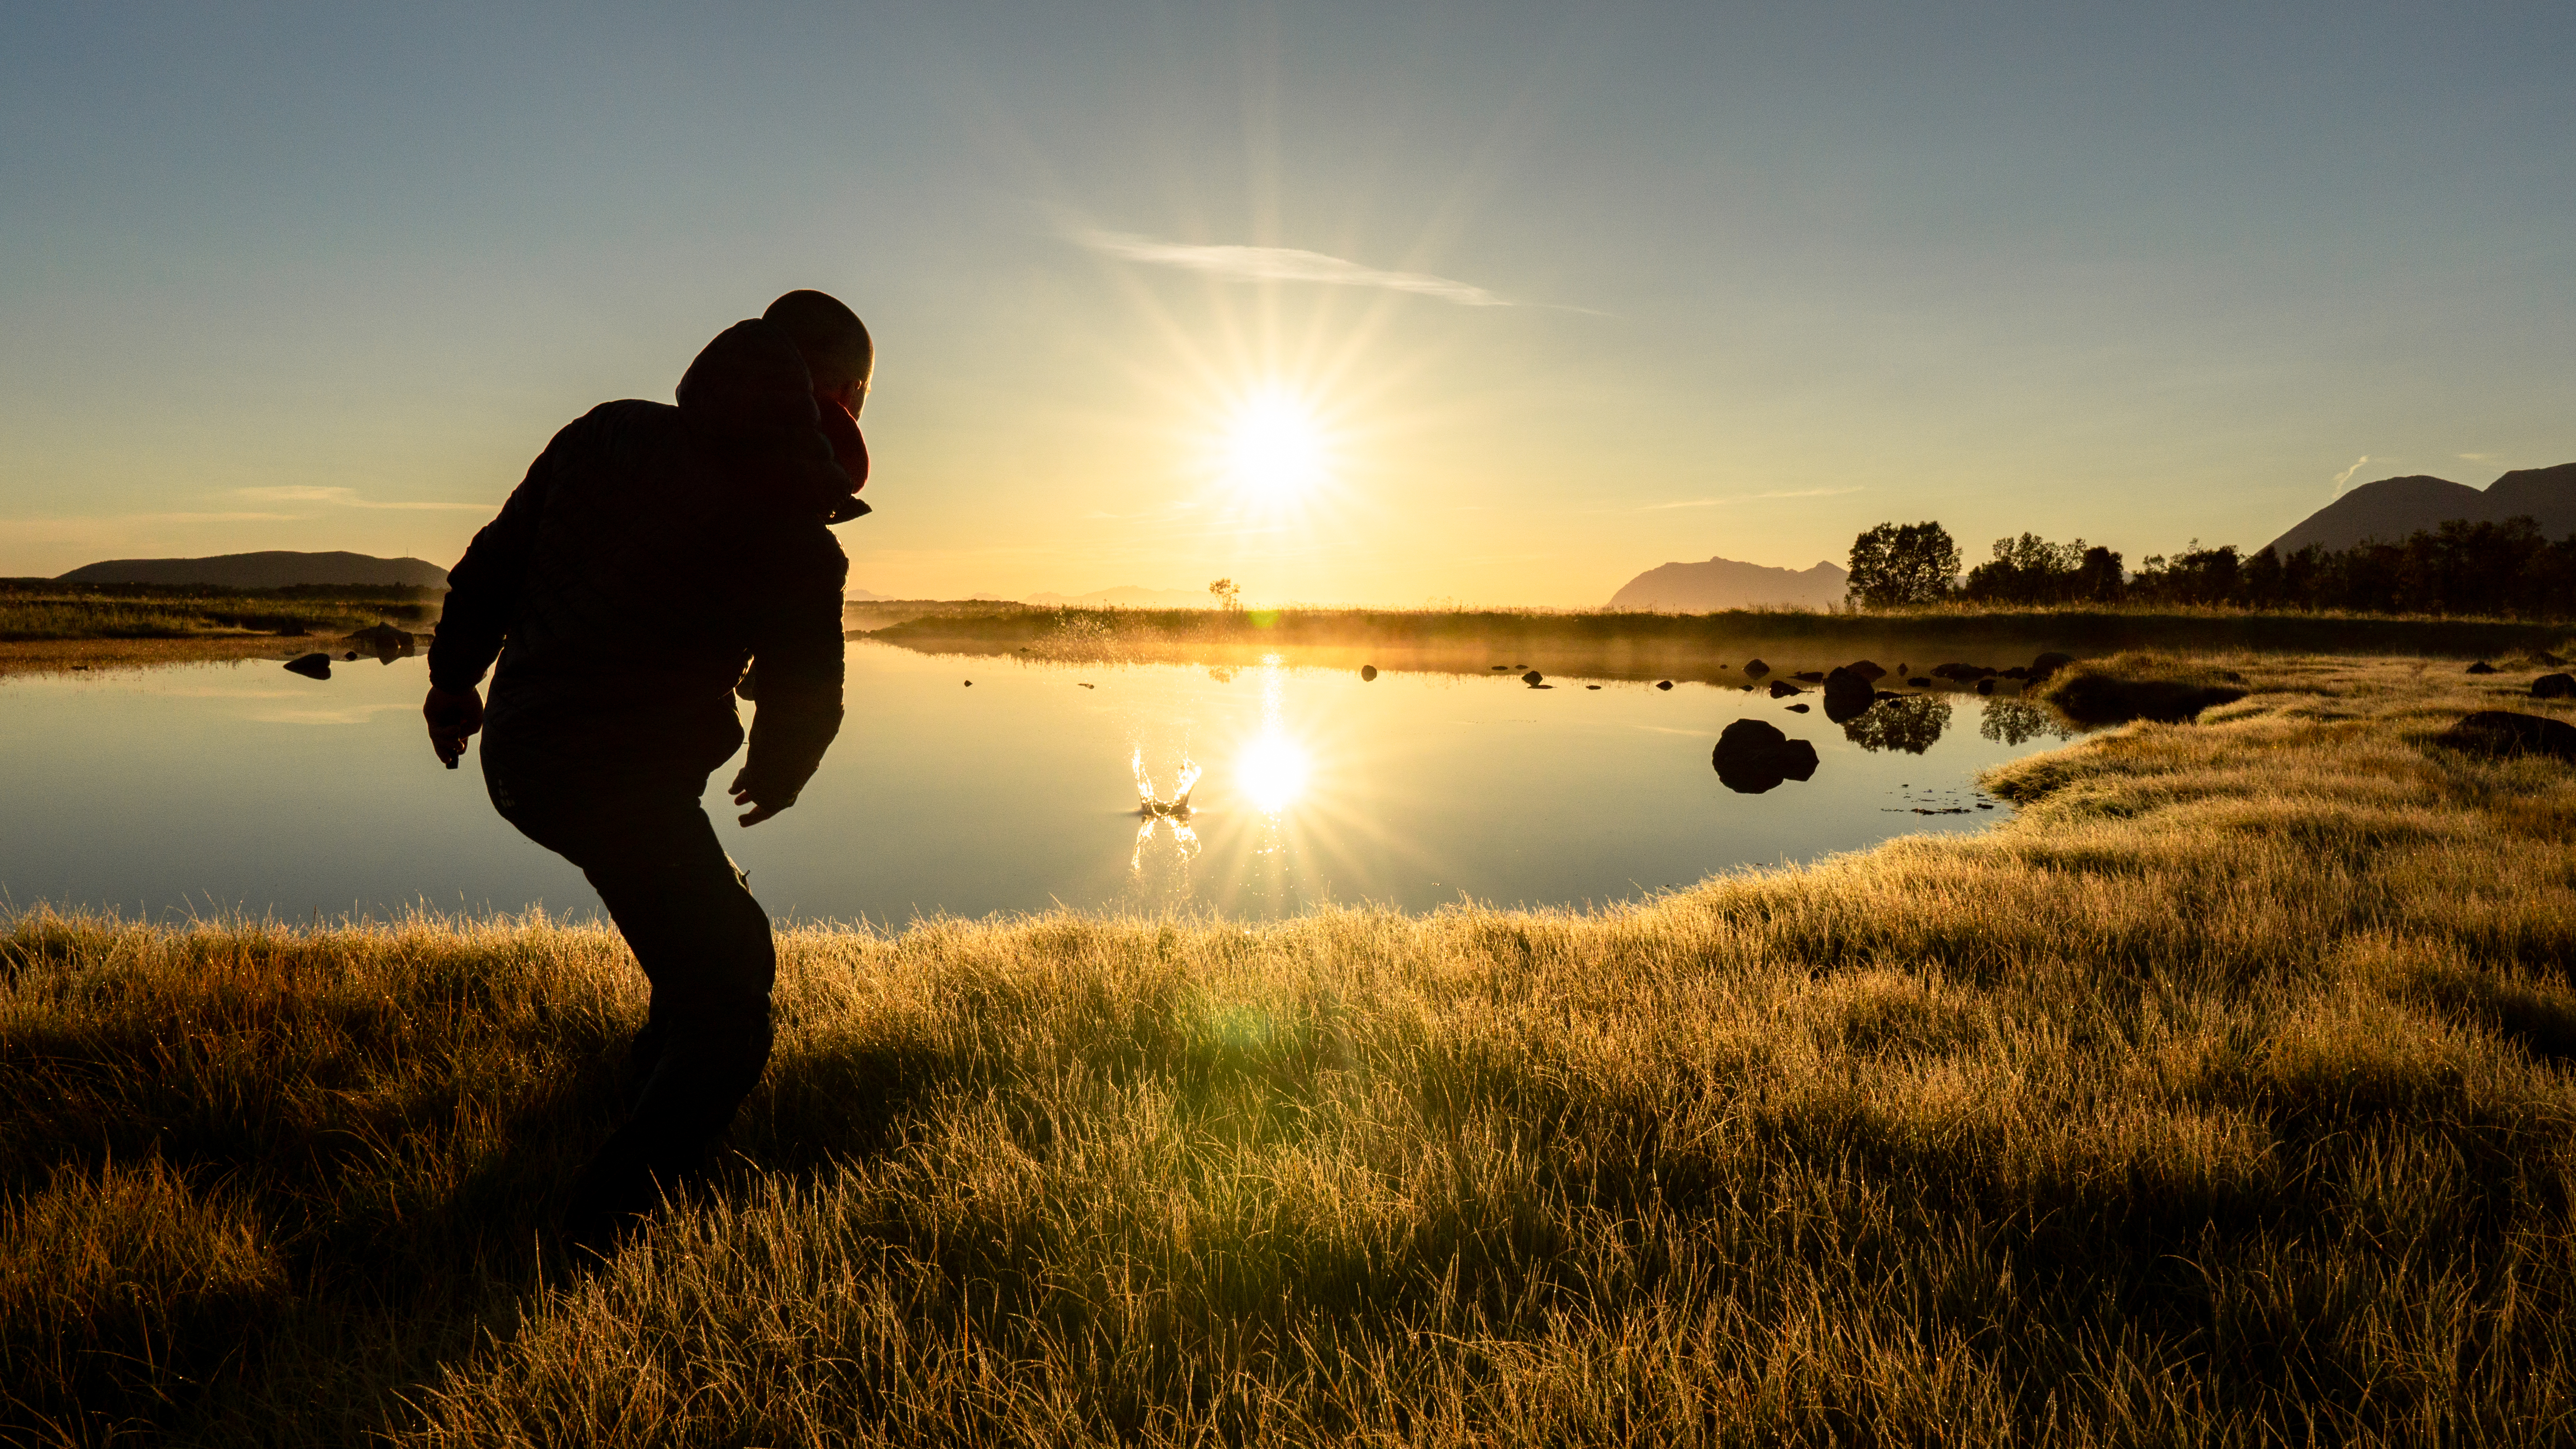 Download Man Throwing a Stone into a Calm Lake During Beautiful Sunrise FREE Stock Photo